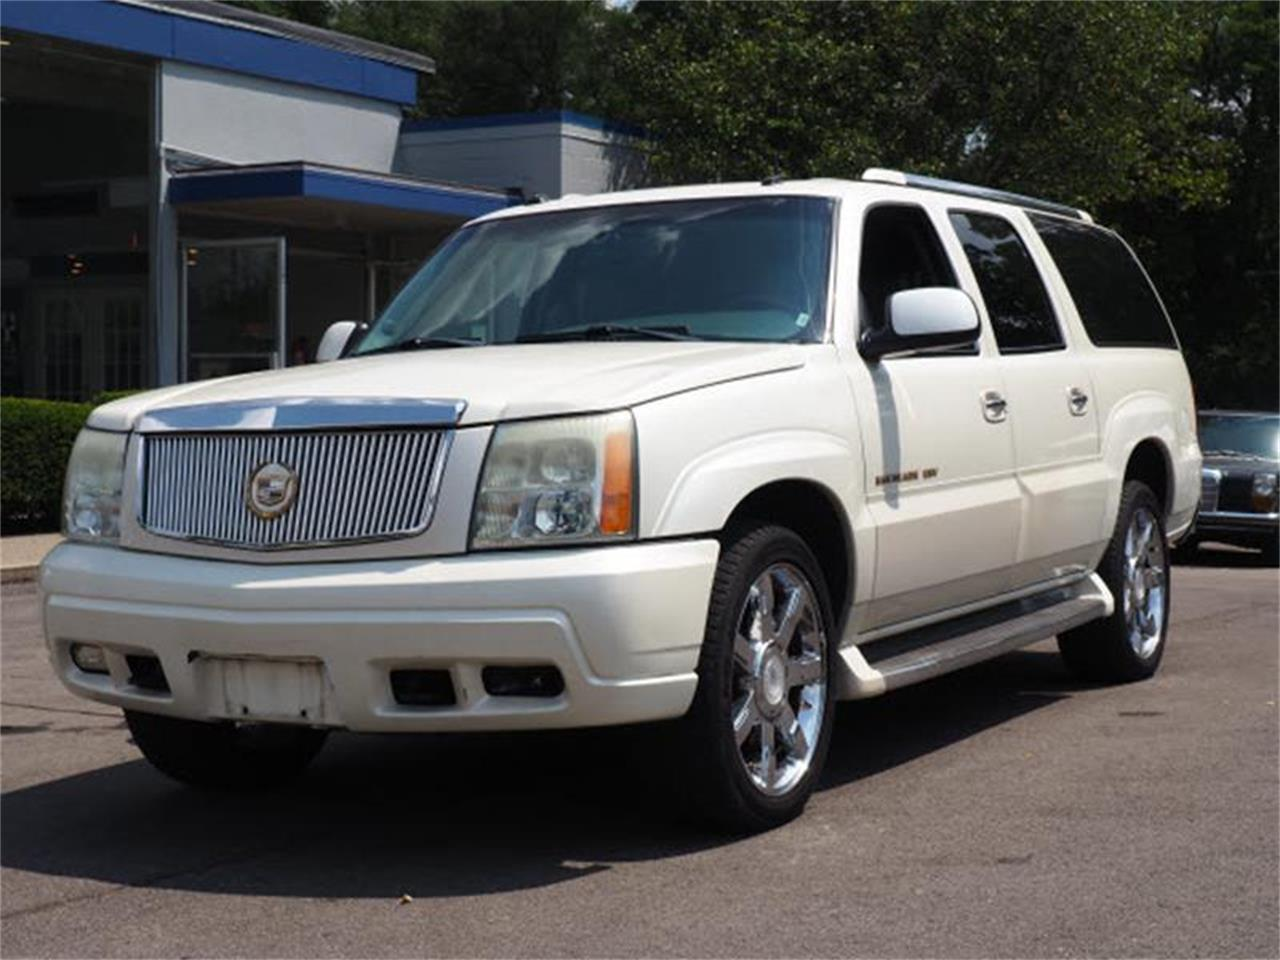 Large Picture of '03 Escalade located in Ohio - $3,000.00 Offered by Cincinnati Auto Wholesale - MBL6